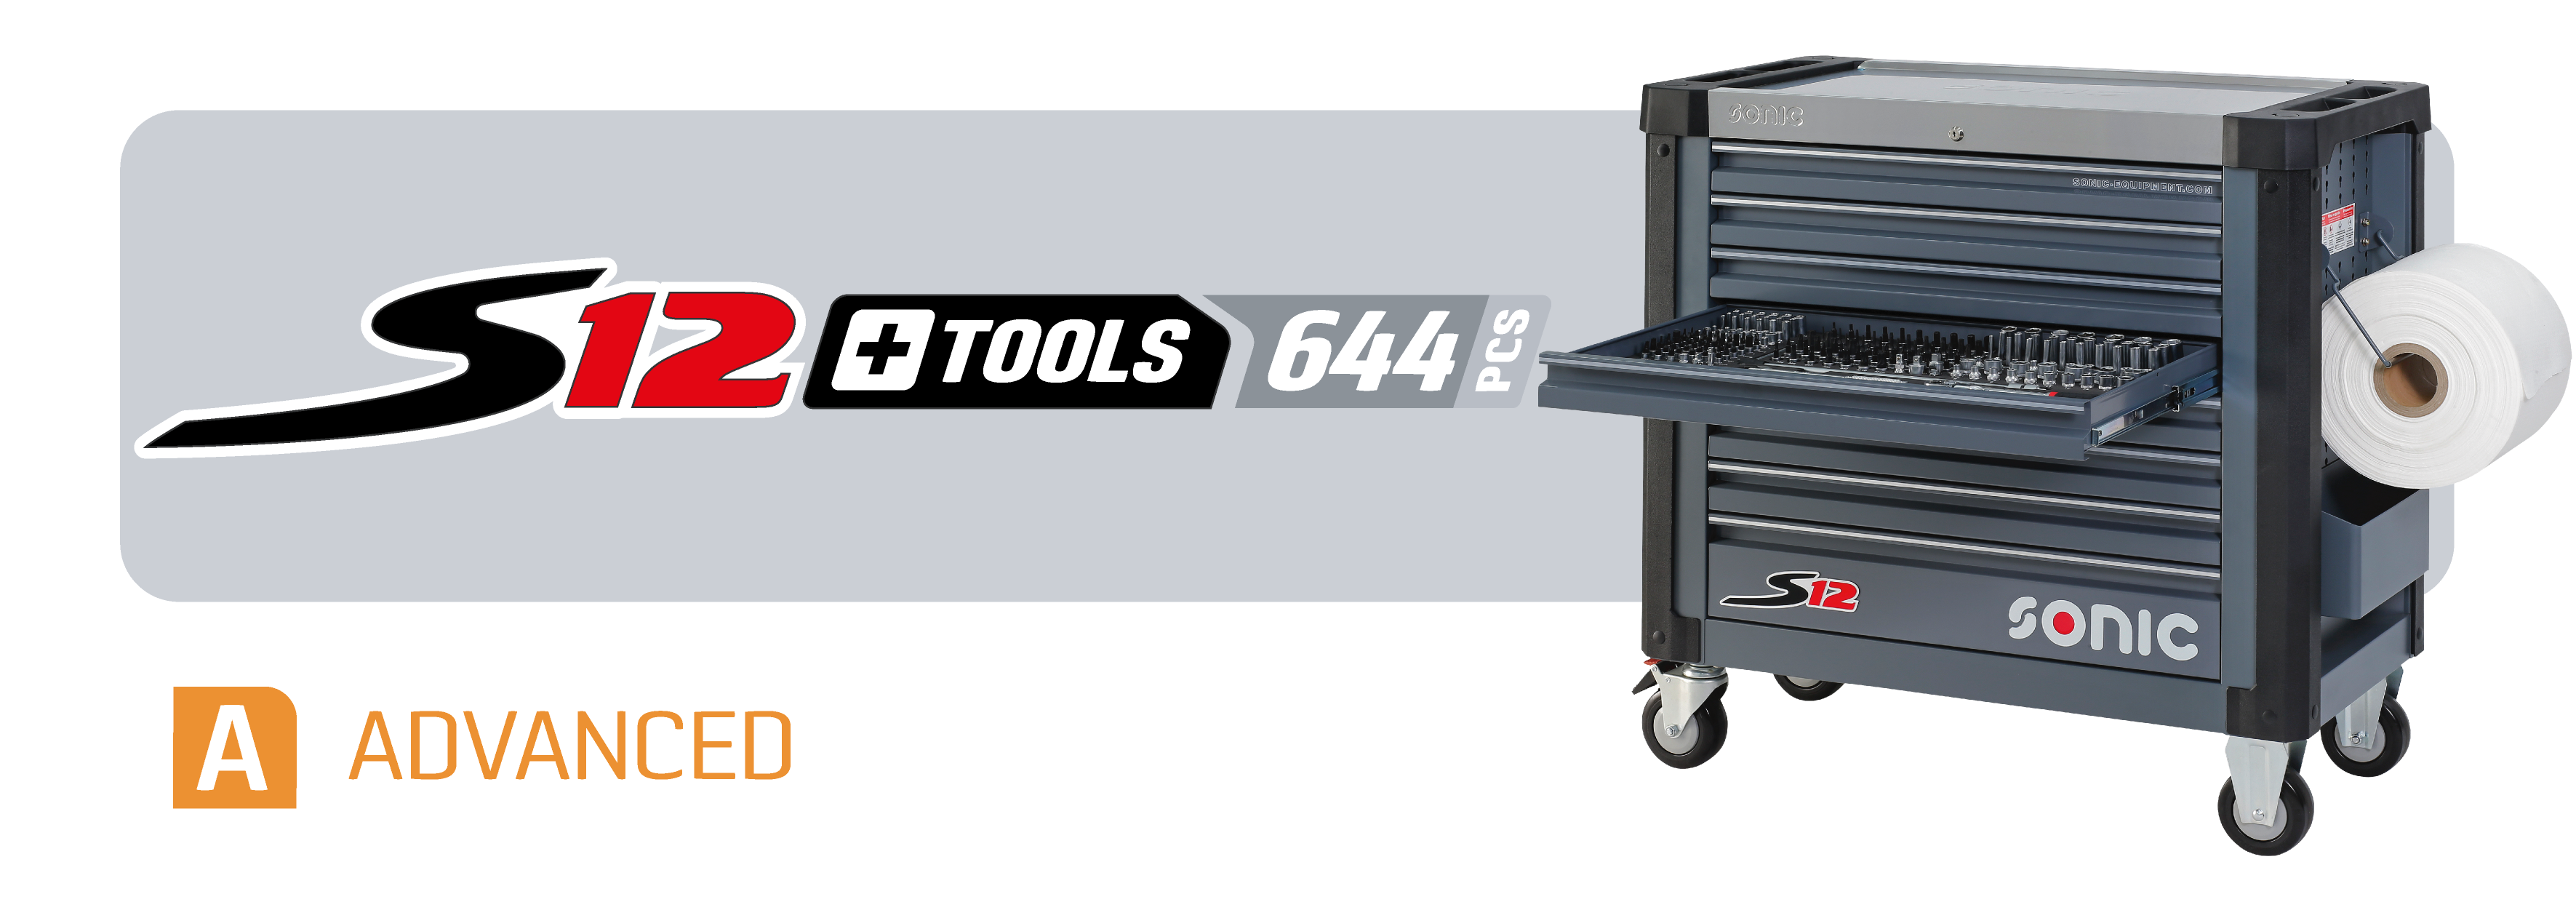 S12 toolbox with tools